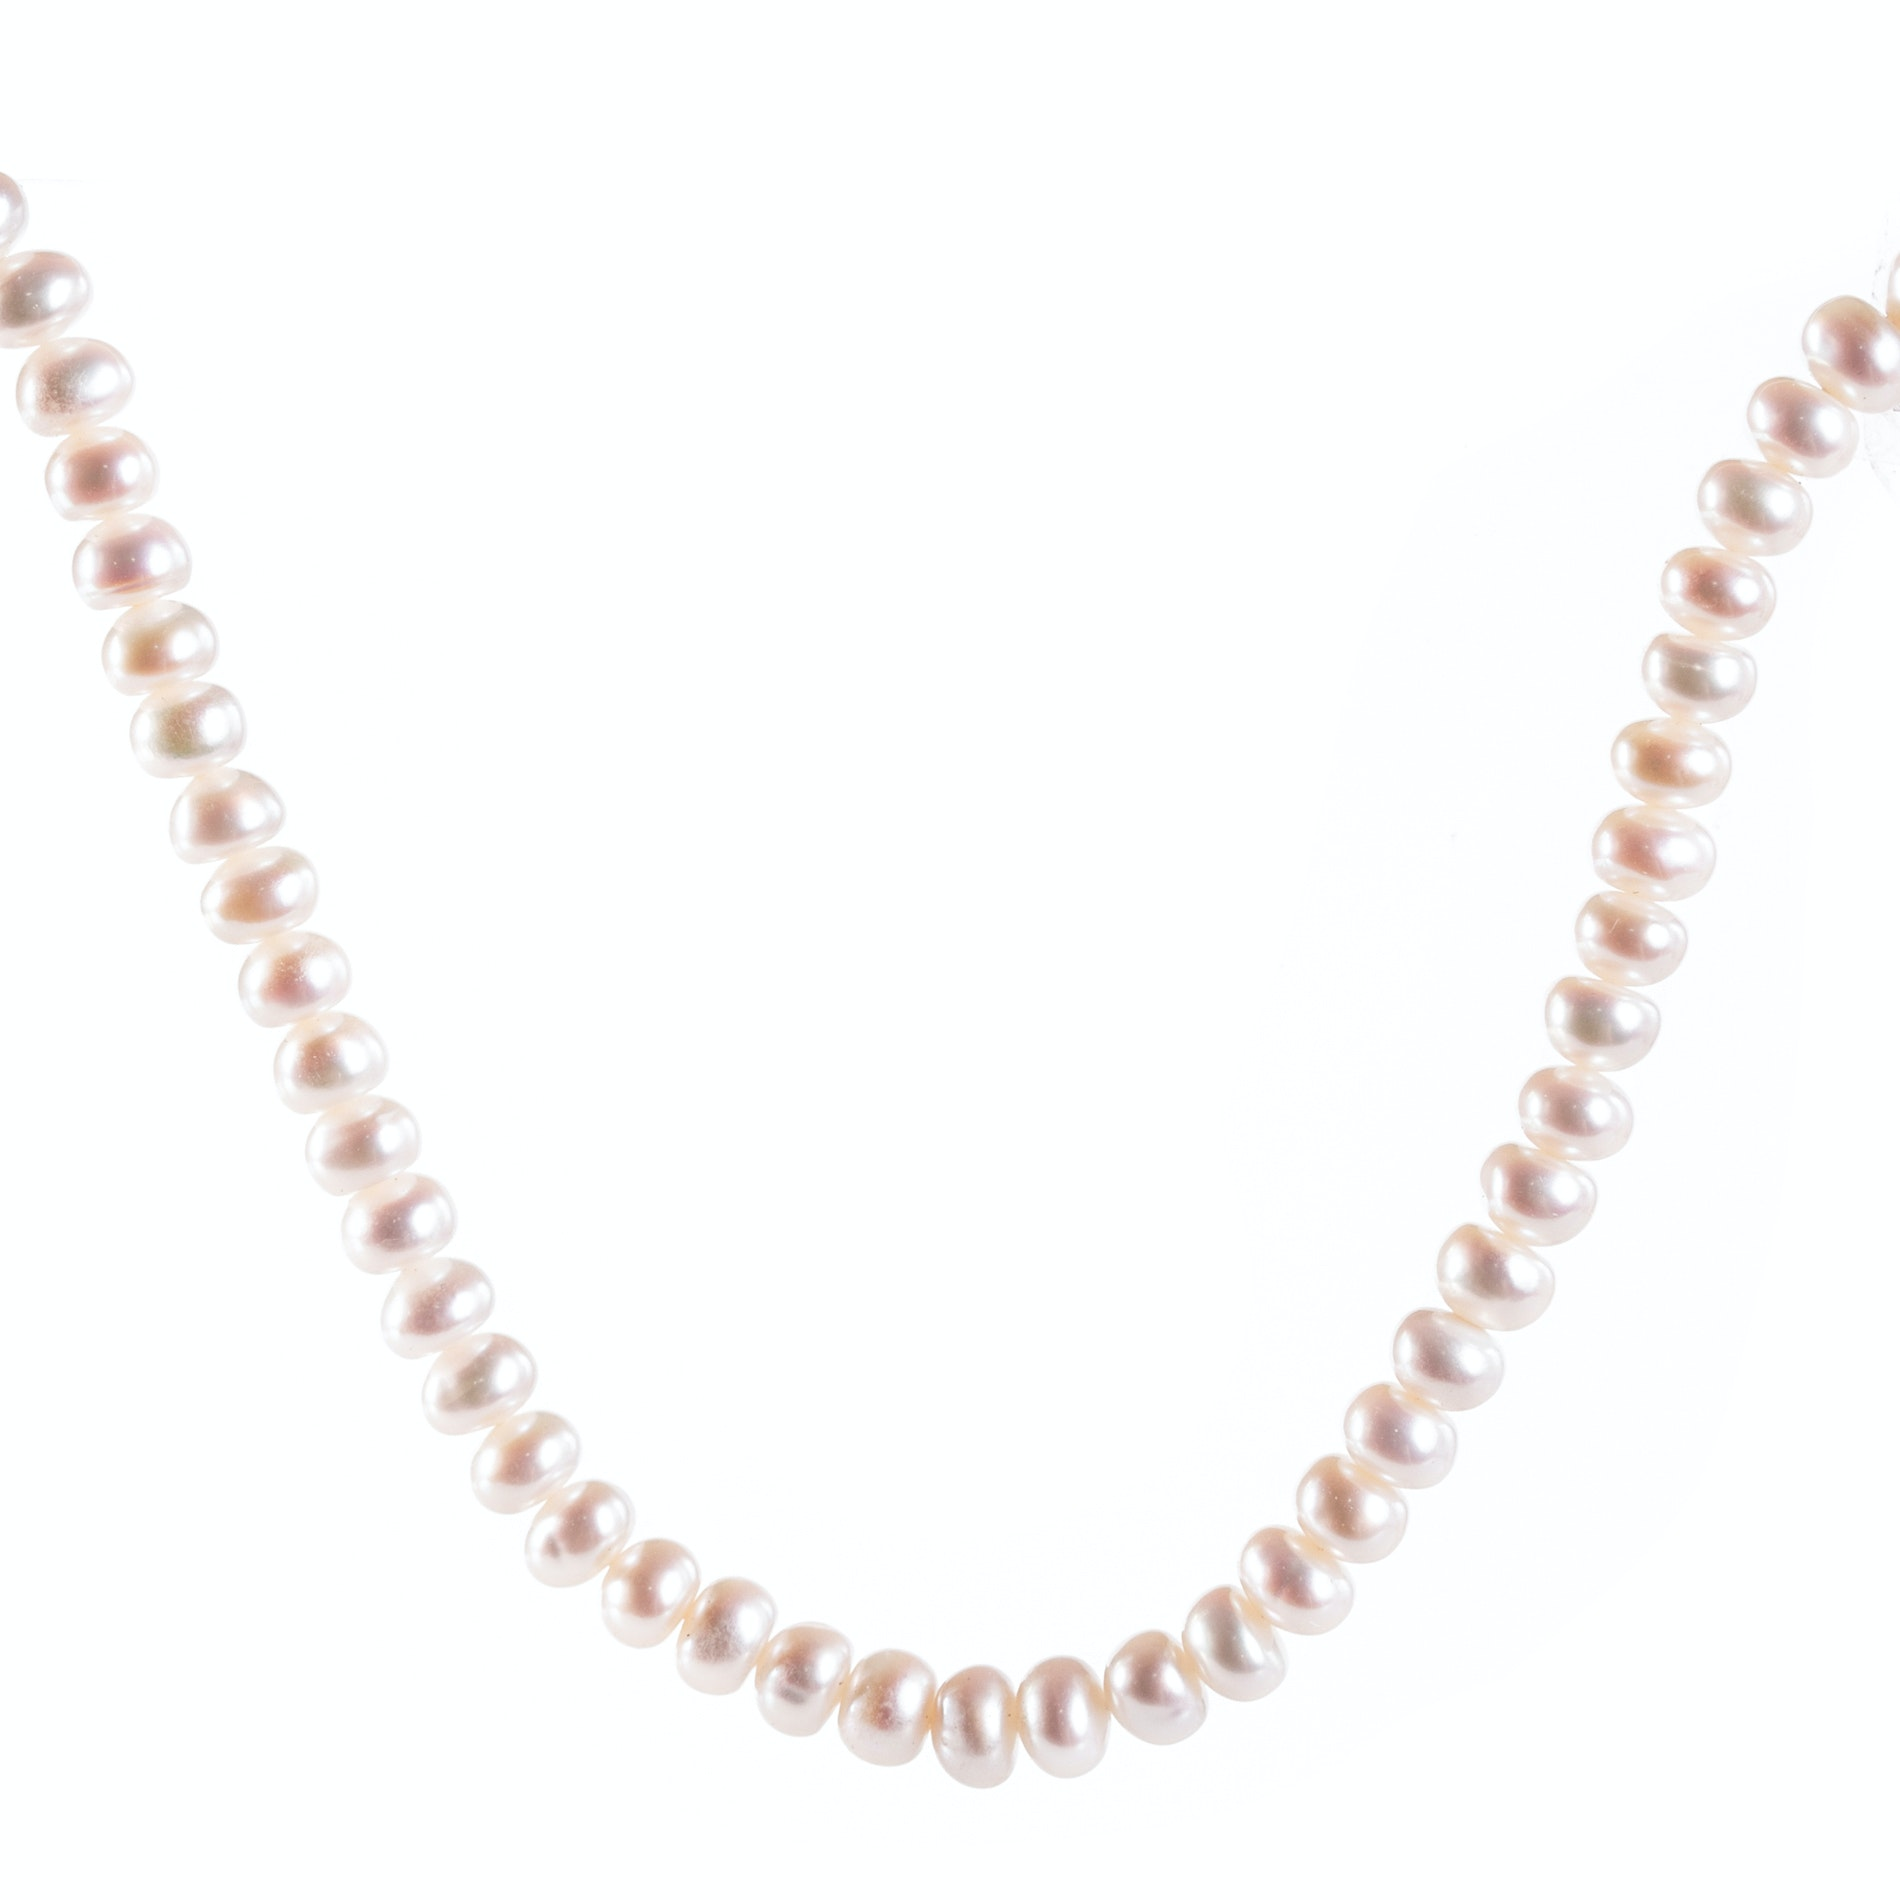 10K Yellow Gold Freshwater Pearl Strand Necklace